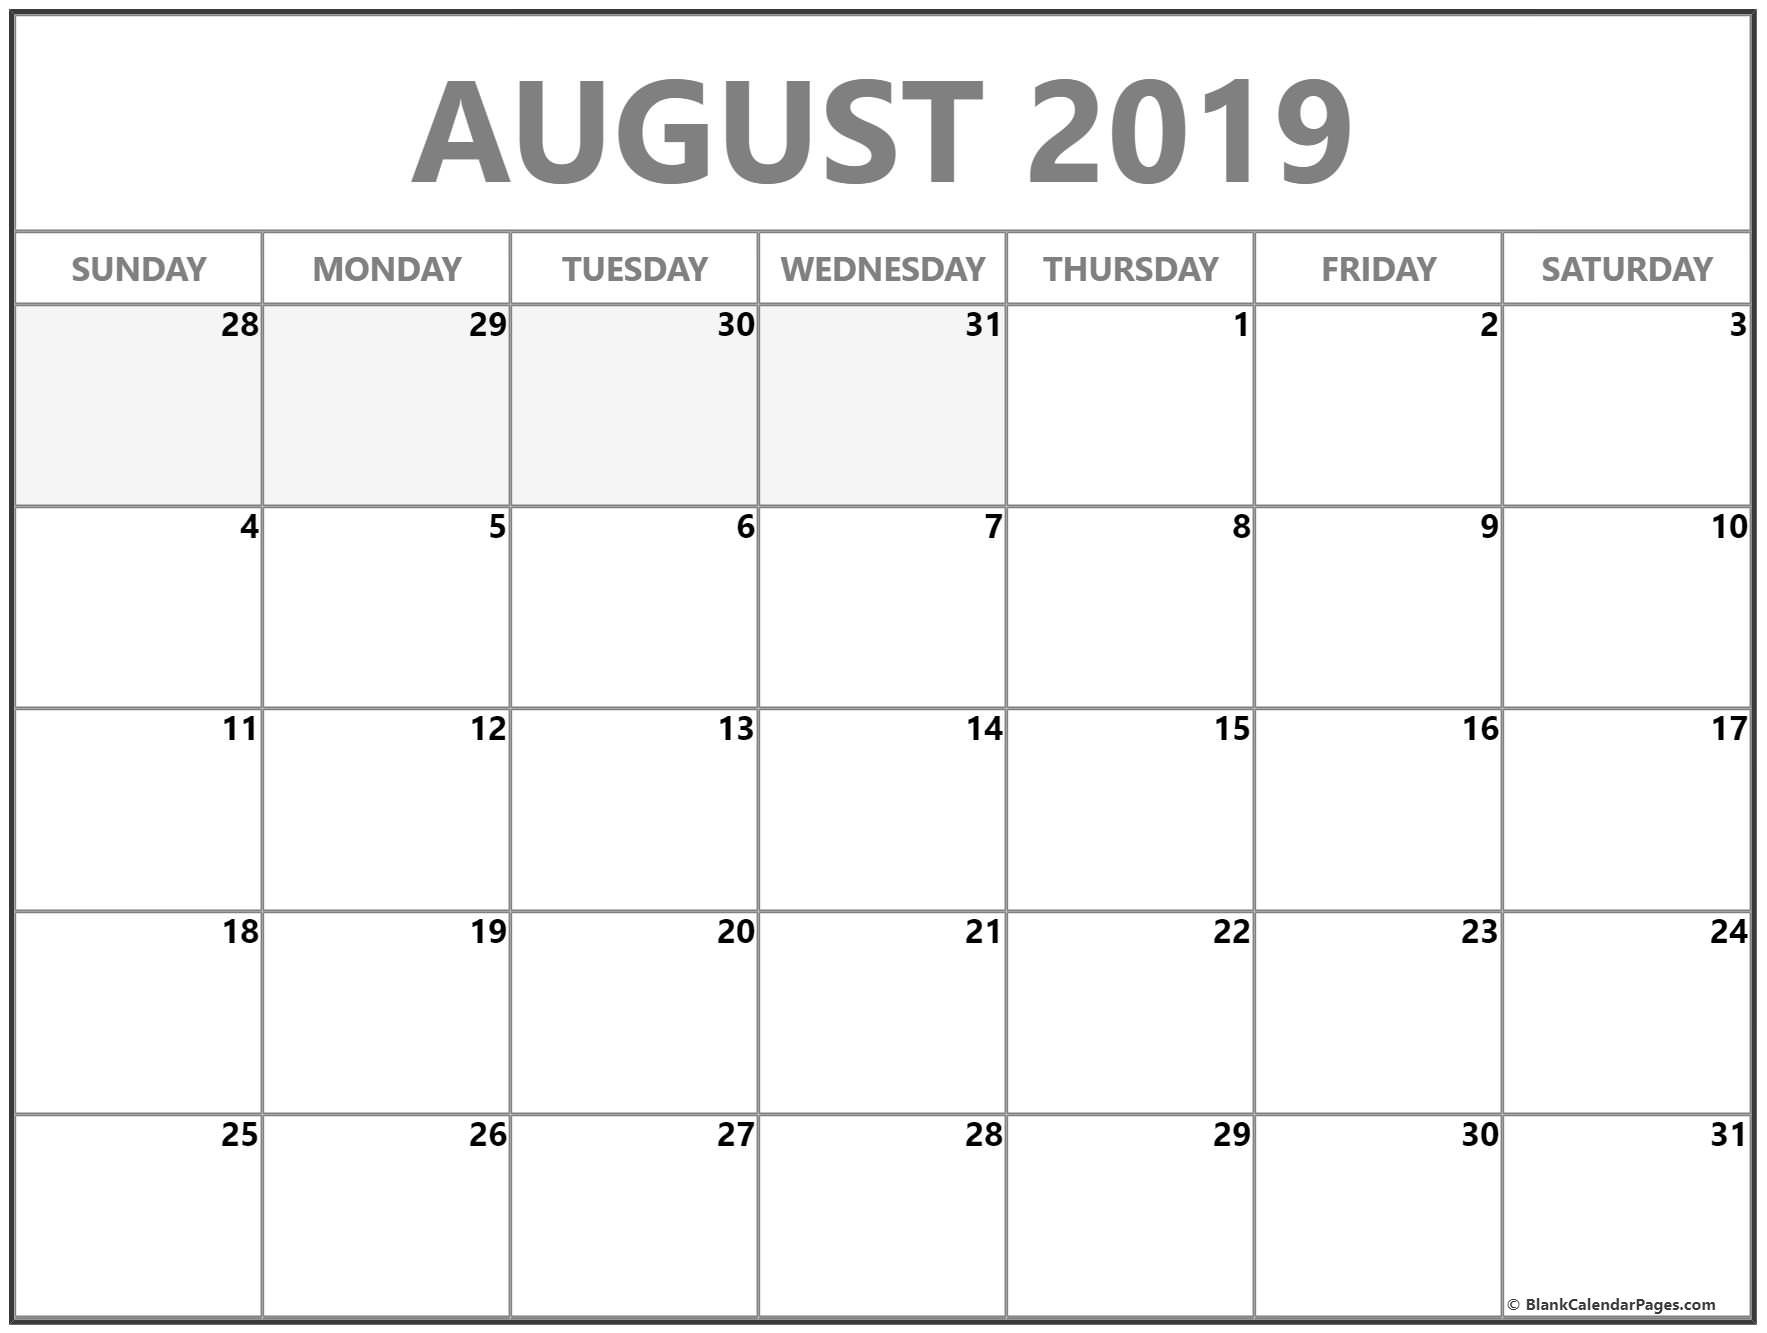 August 2019 Calendar   Free Printable Monthly Calendars-June July August Monthly Calendar Print